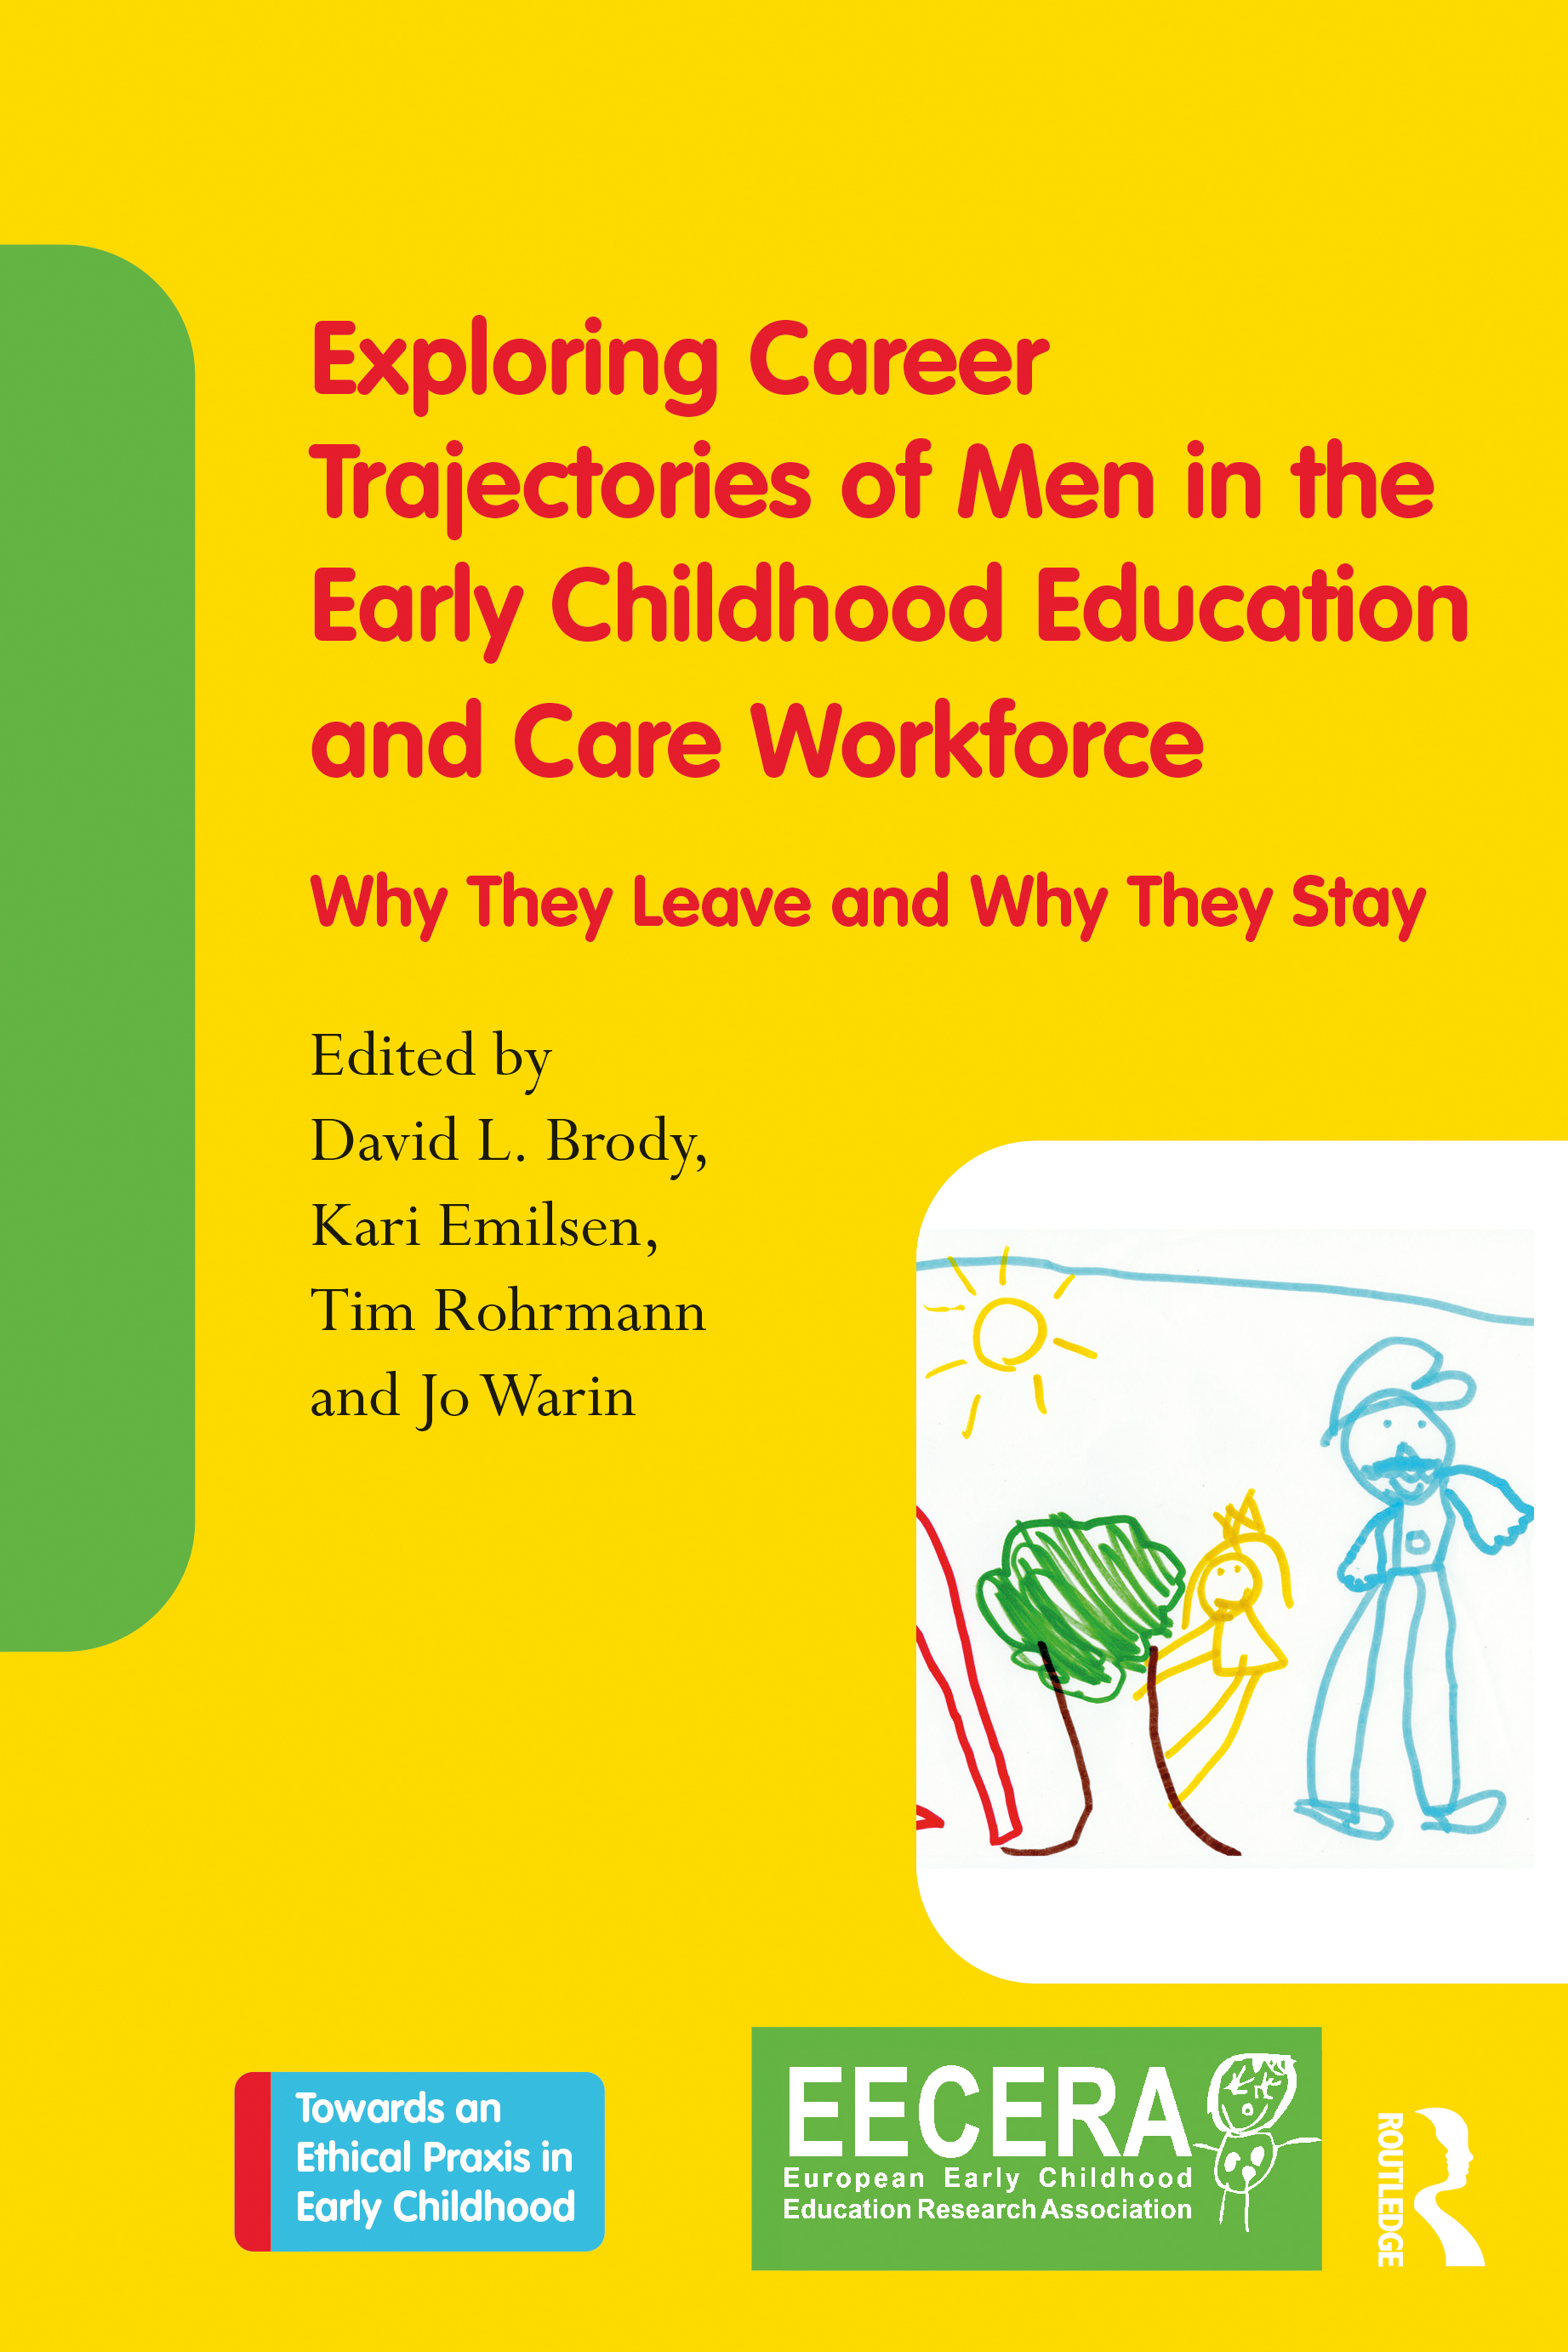 Exploring Career Trajectories of Men in the Early Childhood Education and Care Workforce